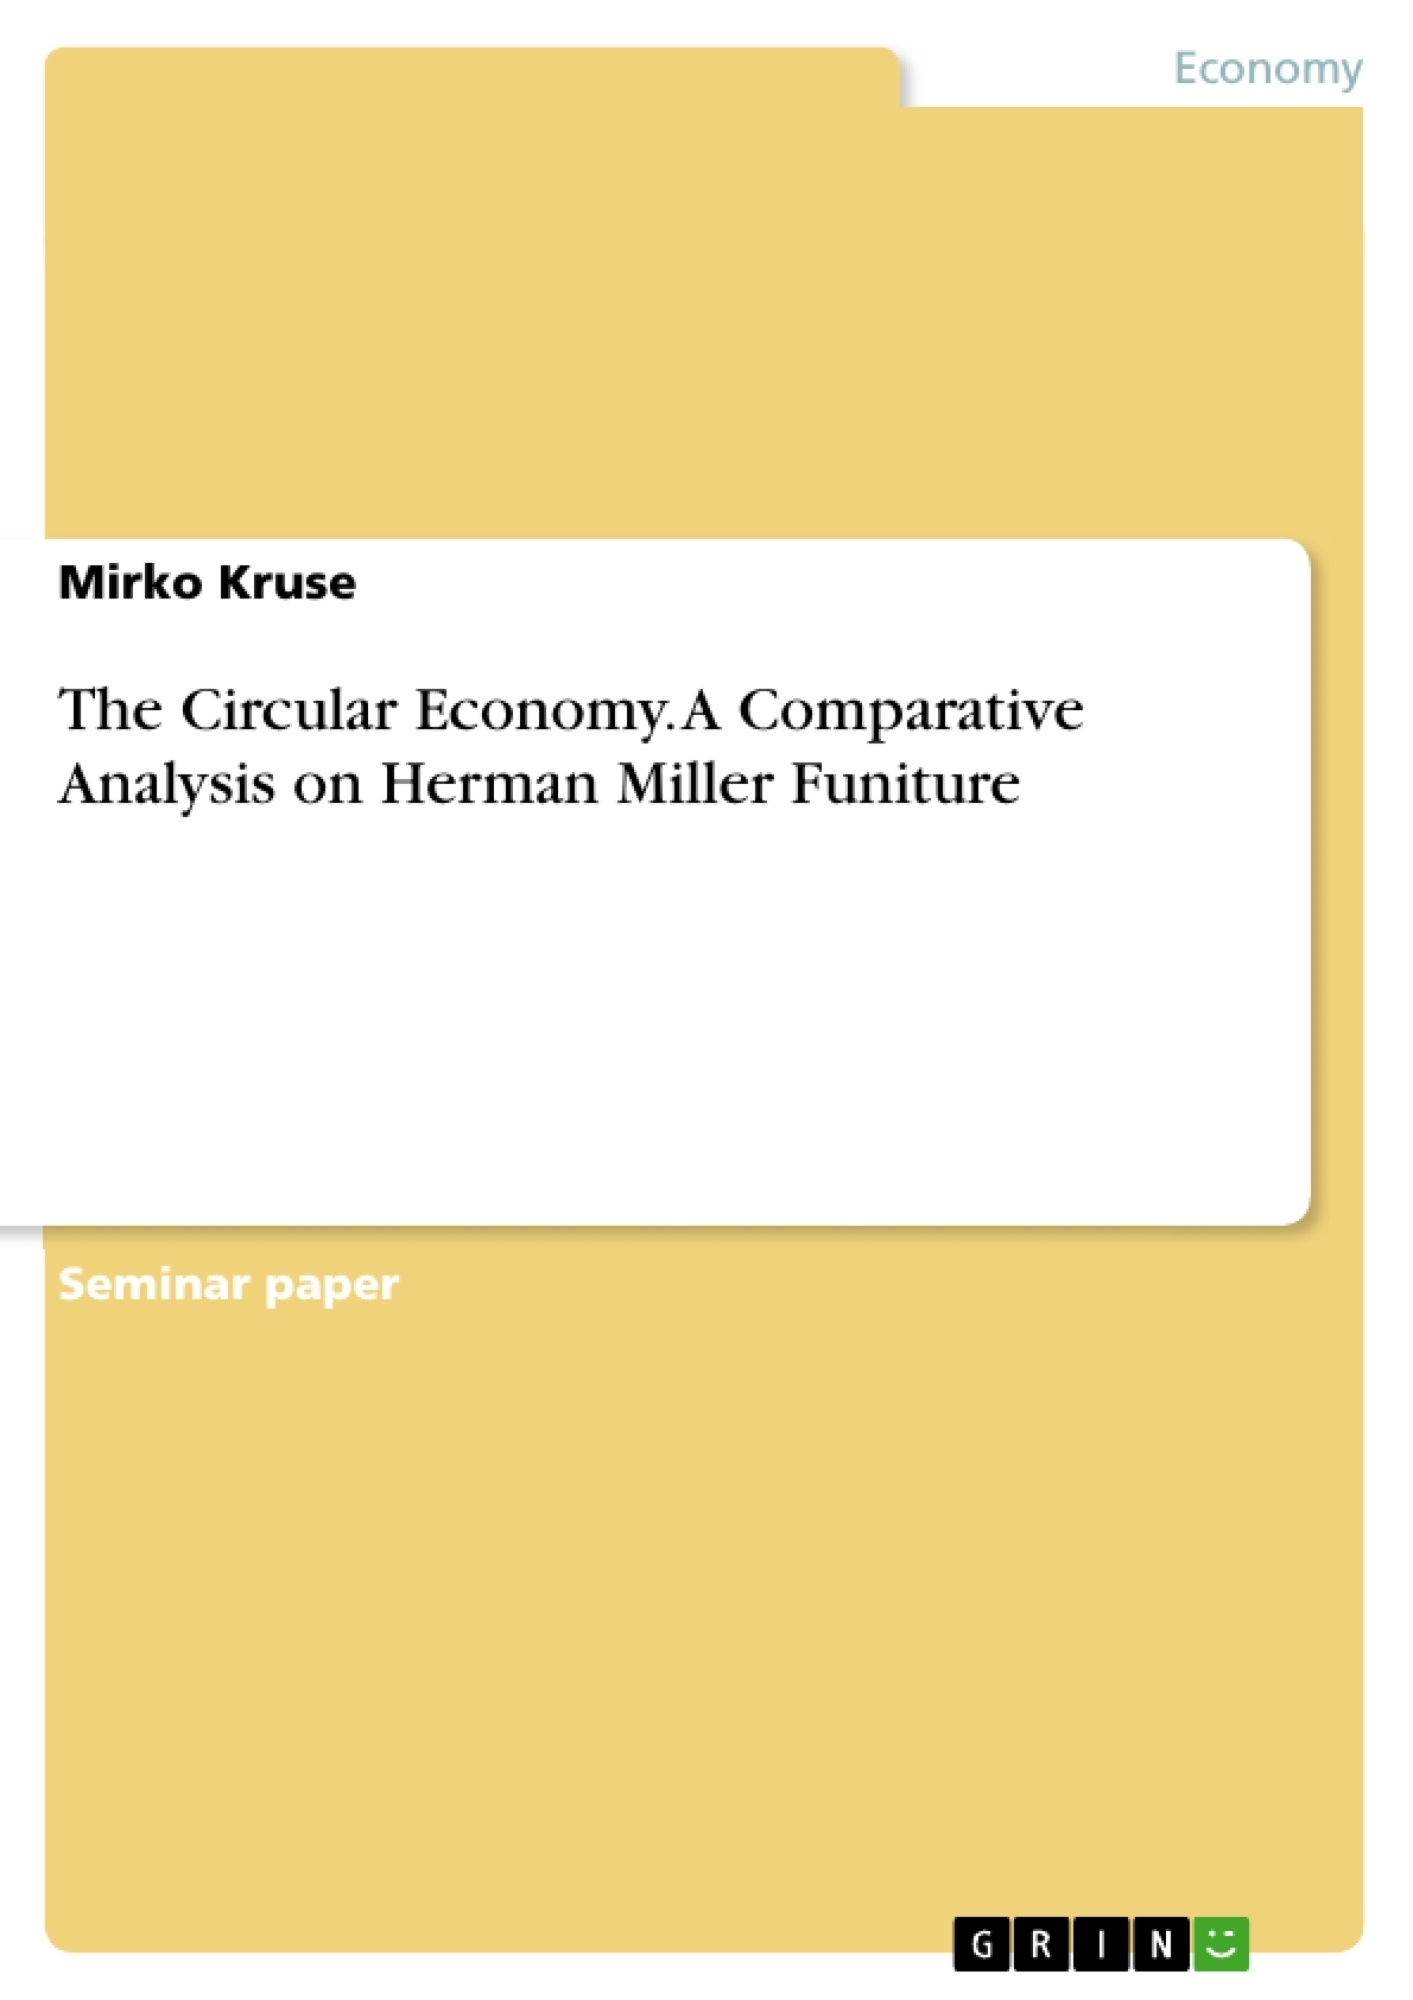 Title: The Circular Economy. A Comparative Analysis on Herman Miller Funiture